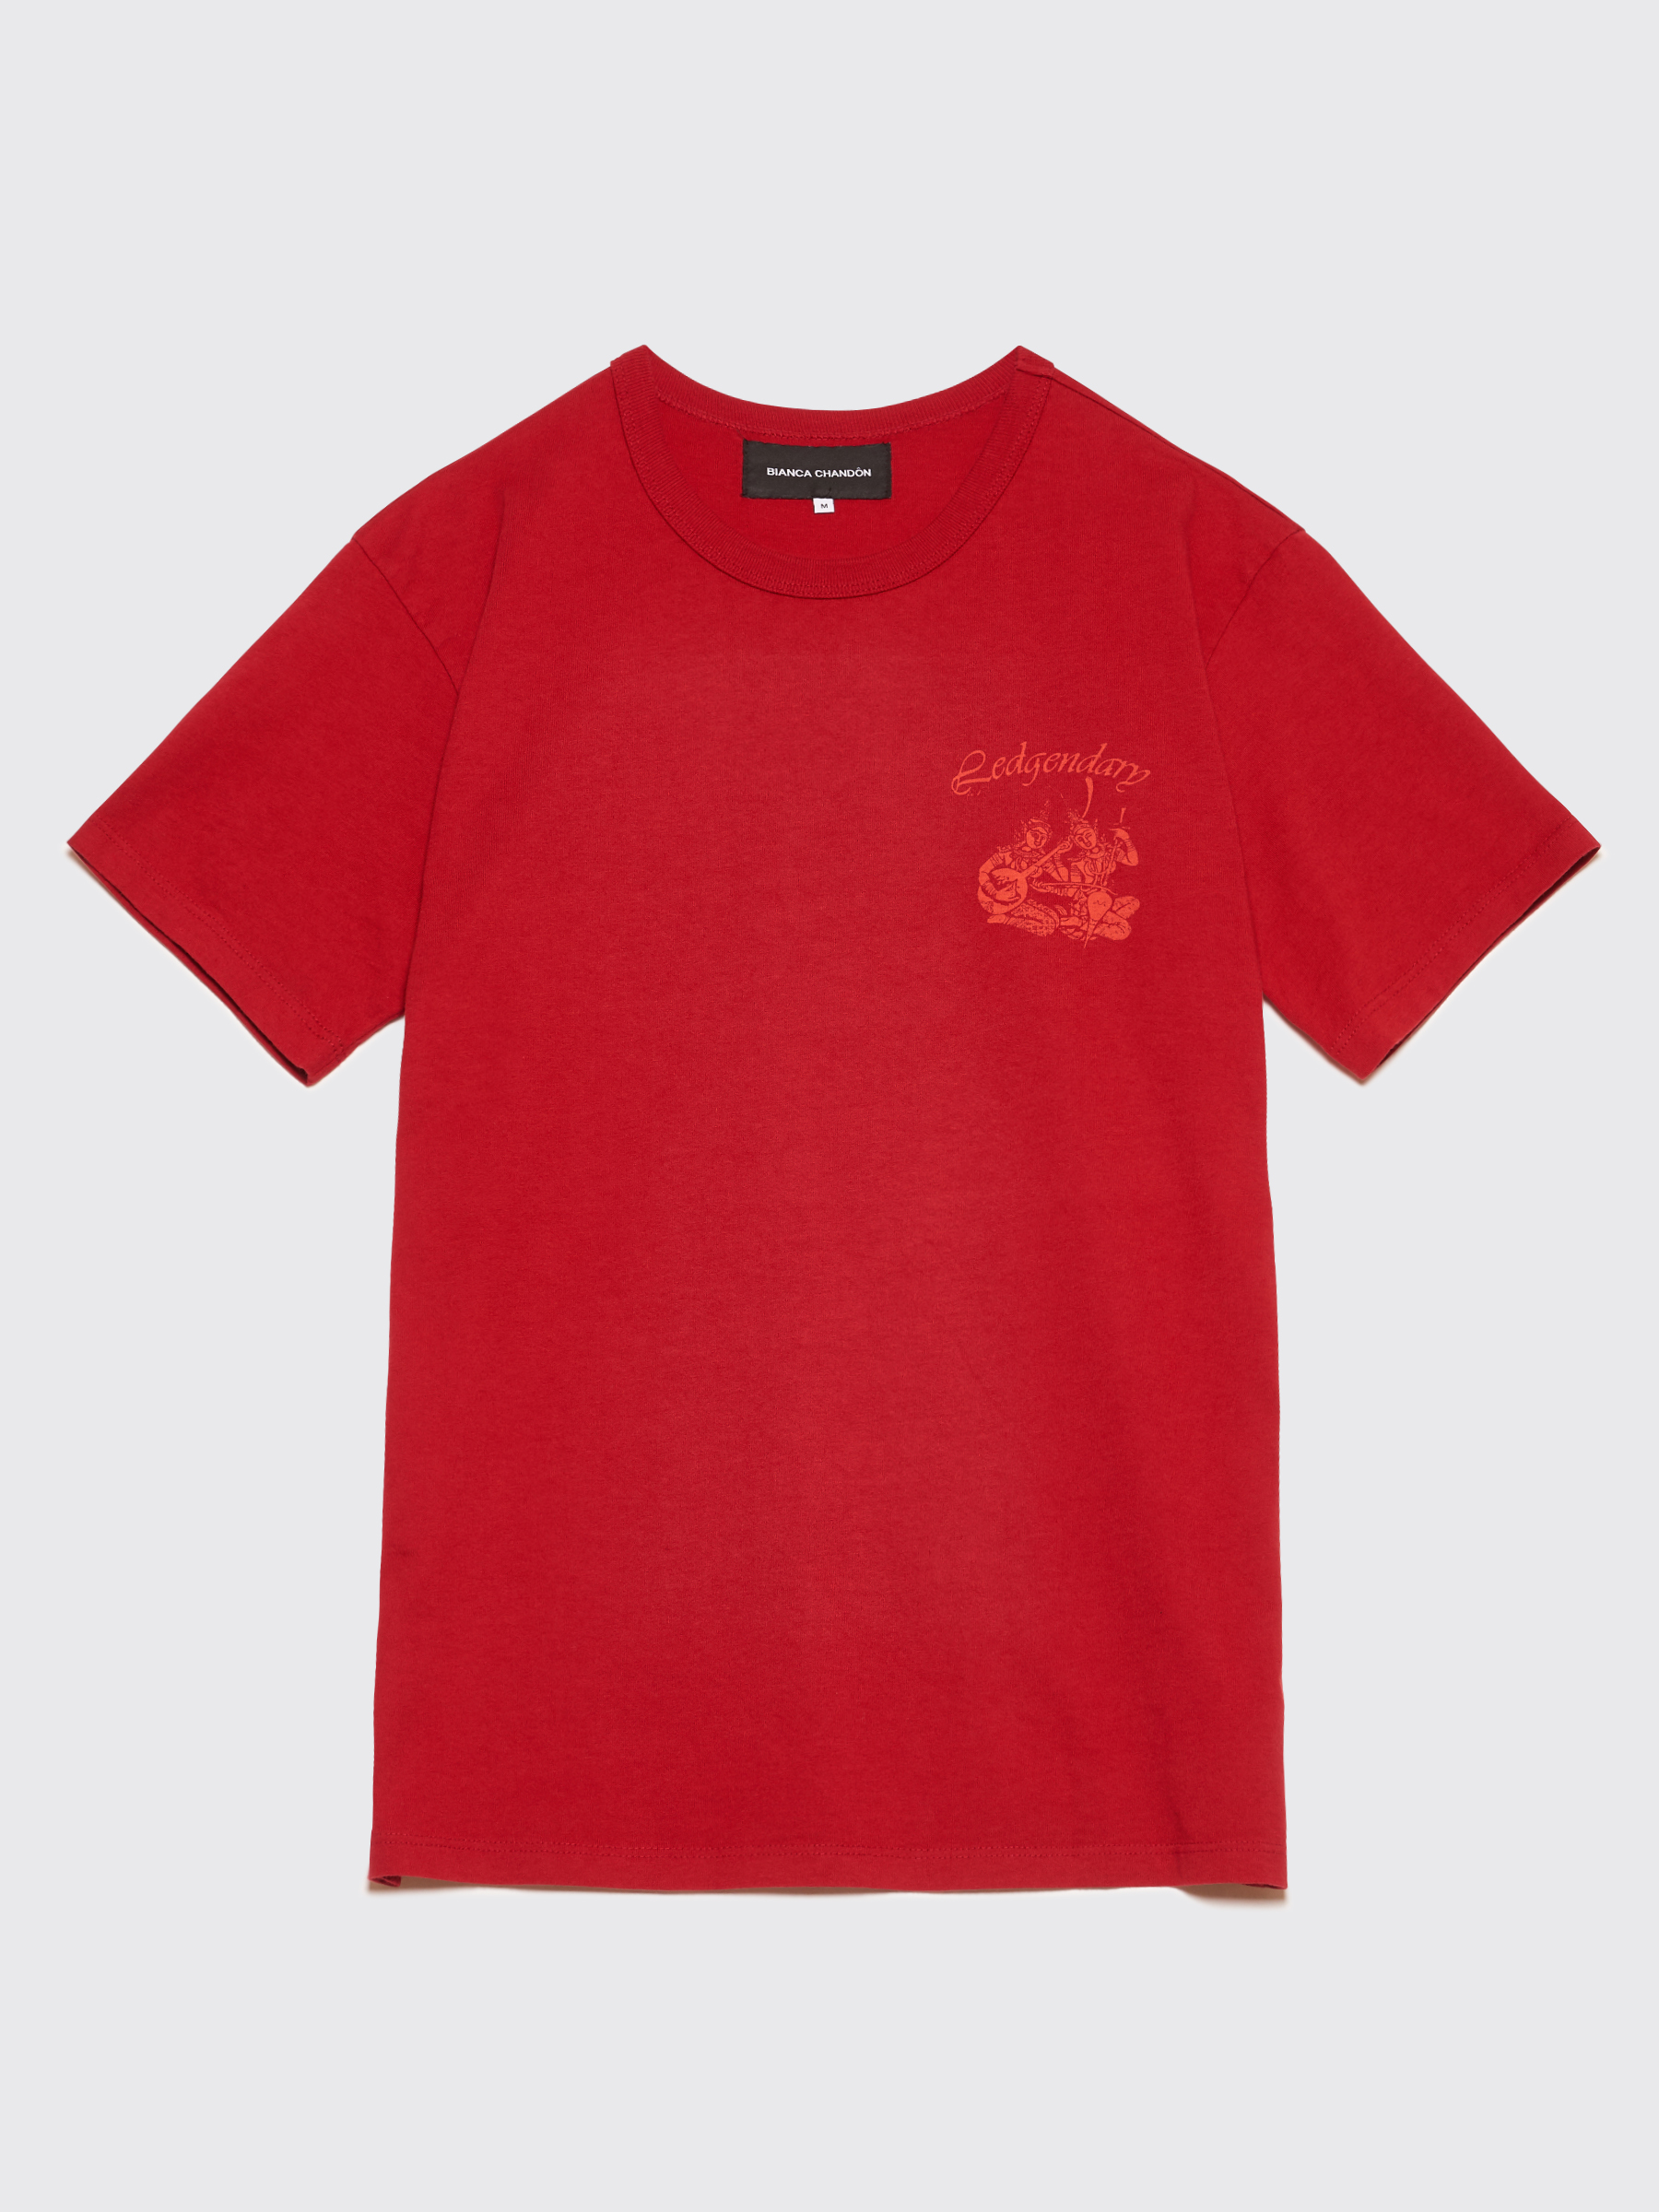 Popular Cheap Price Buy Cheap Official Site Red Legendary House of Bianca T-Shirt Bianca Chandon Sale 2018 Unisex jCy1c